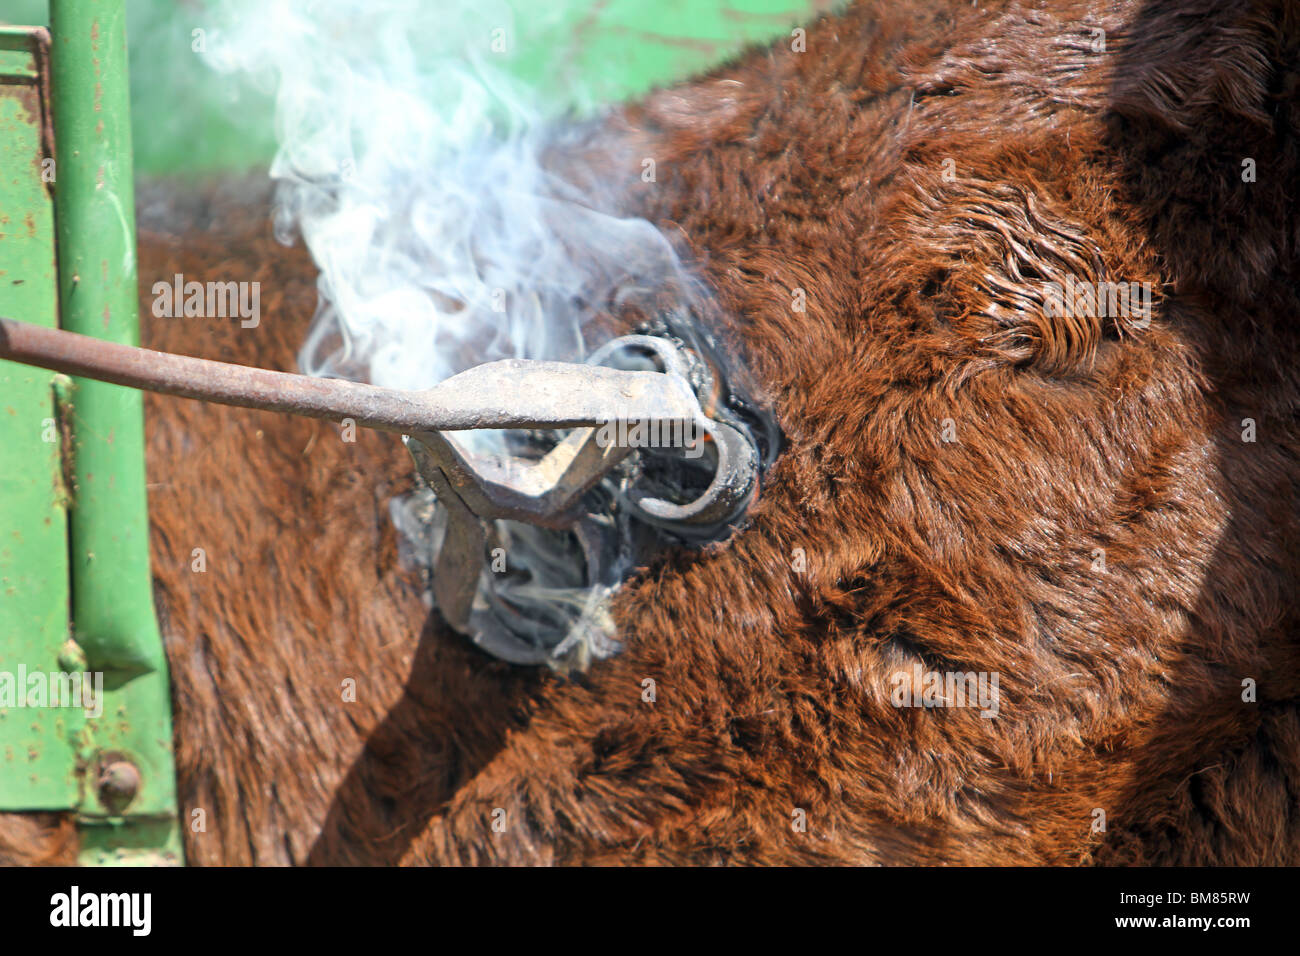 Cow branding stock photos cow branding stock images alamy branding cattle with a red hot brand iron smoke fire and burning skin as buycottarizona